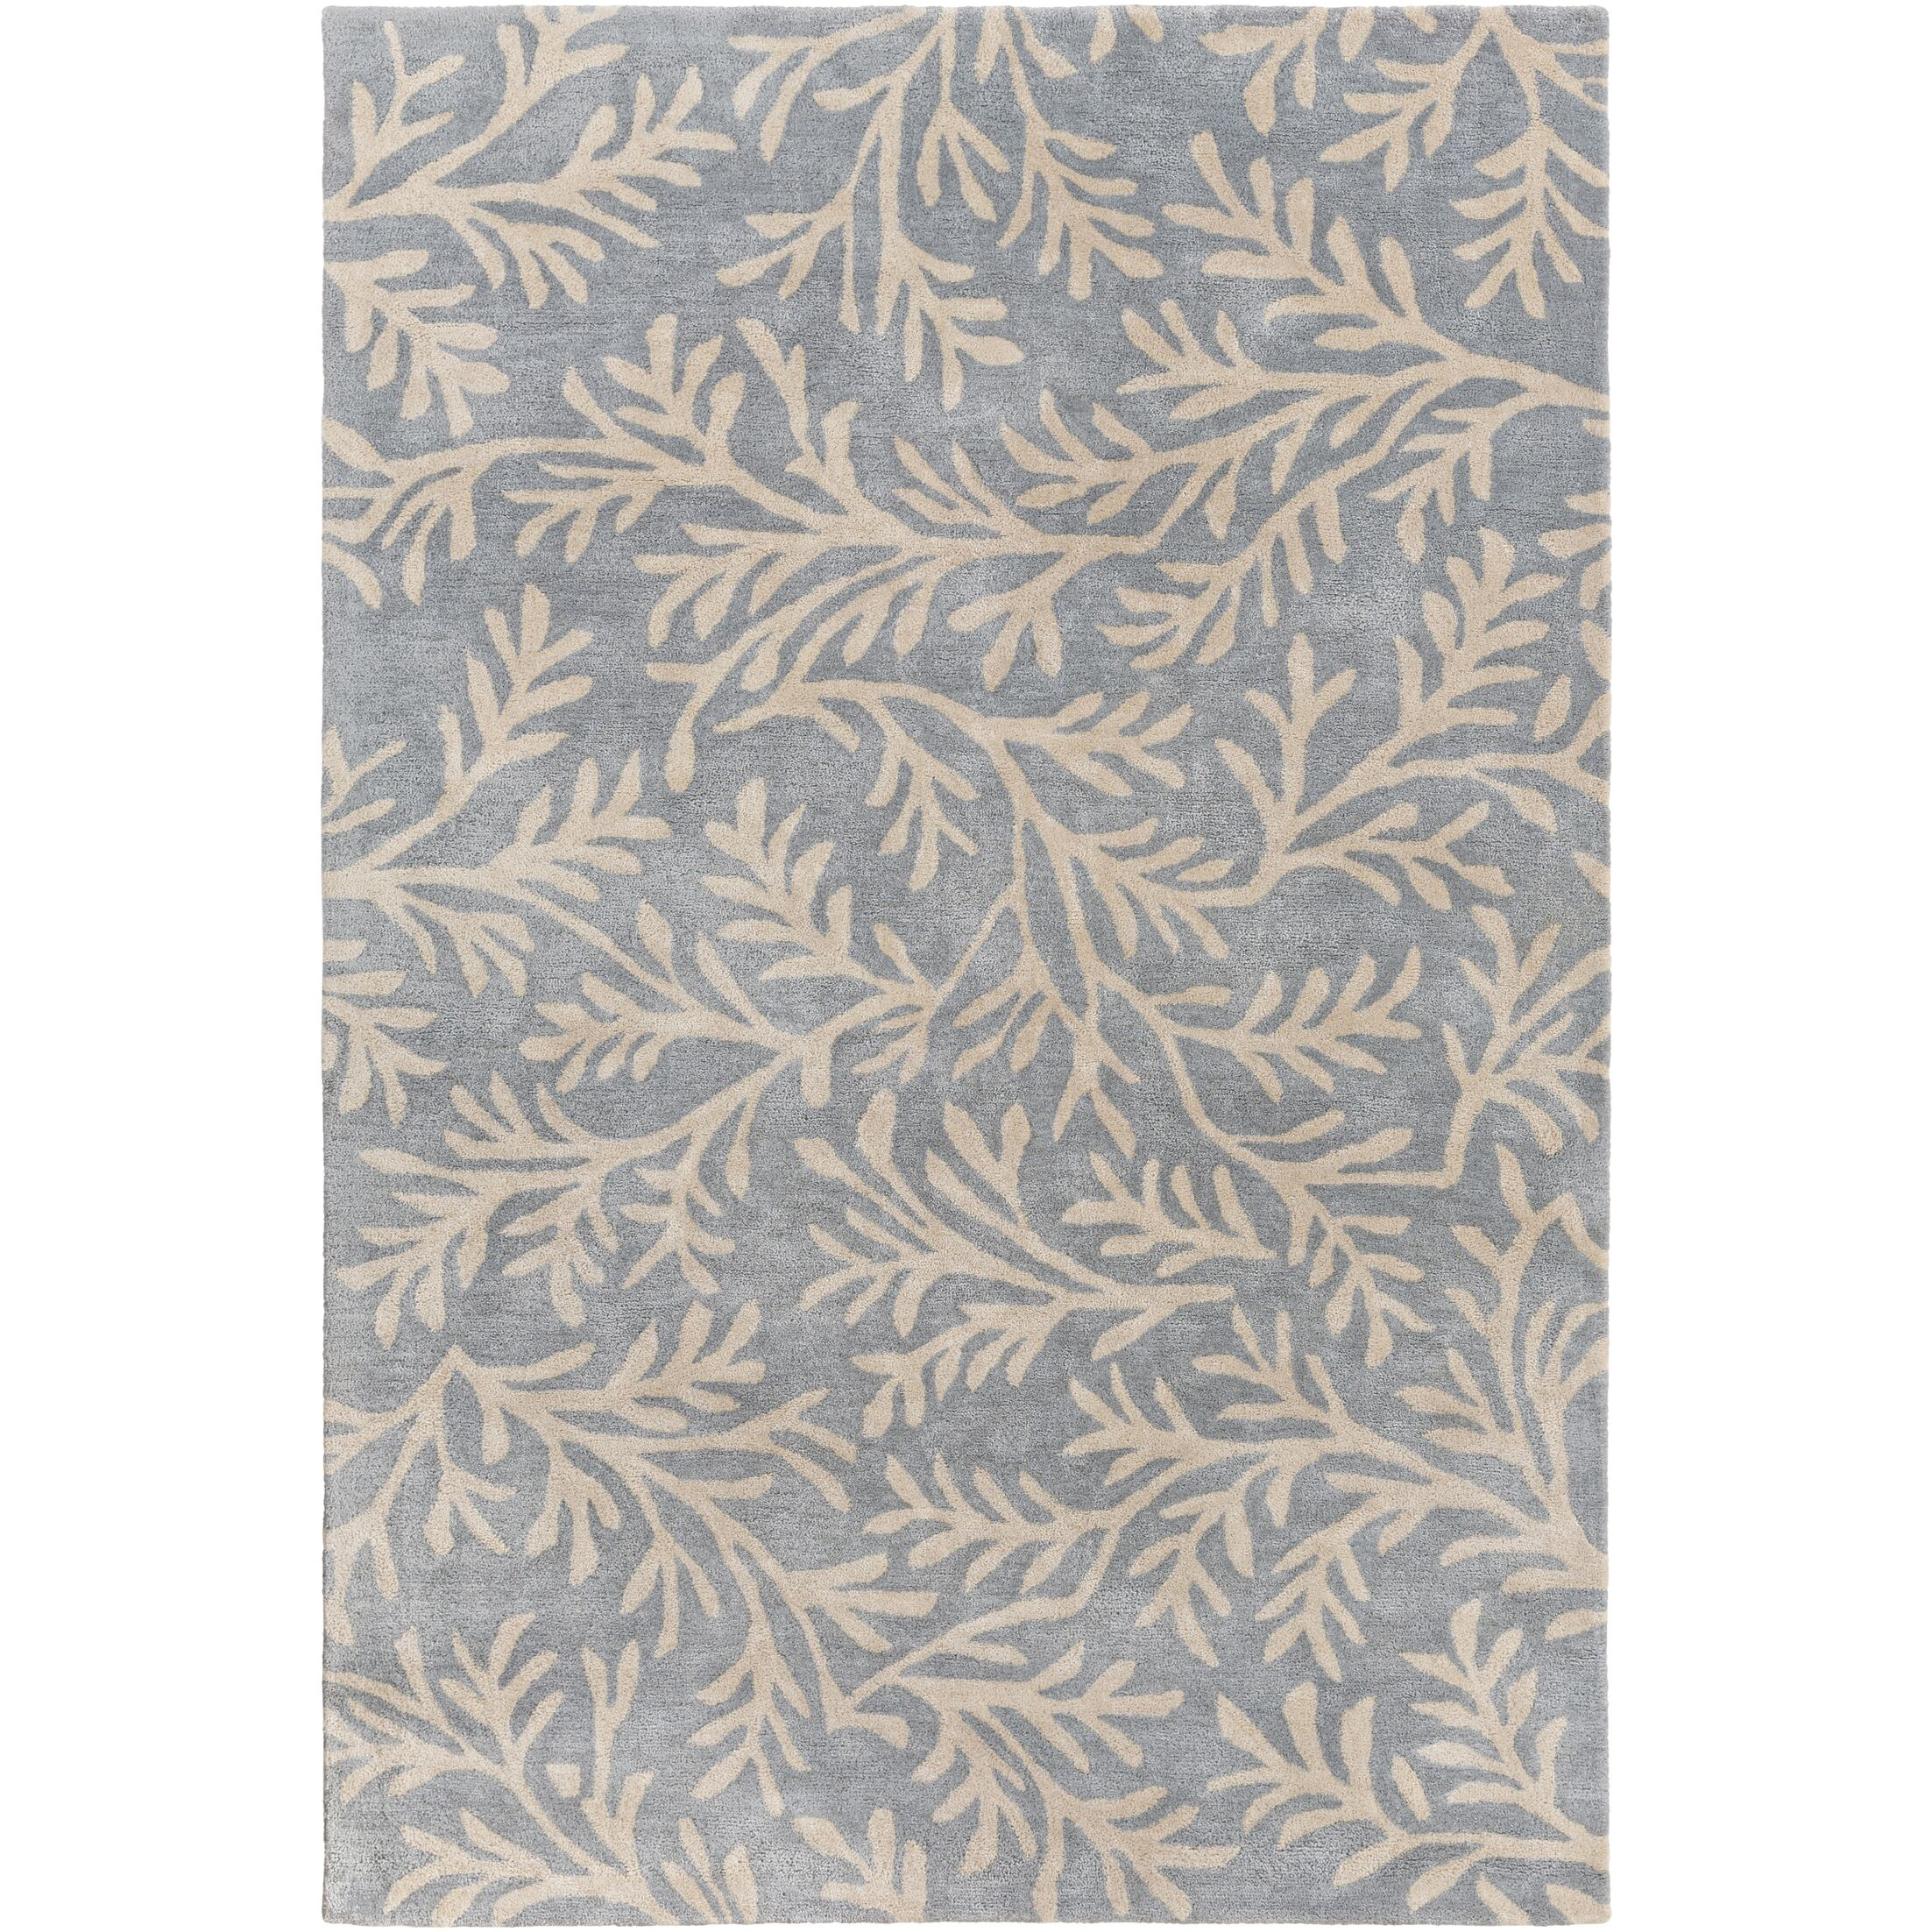 Grant Hand-Tufted Denim/Cream Area Rug Rug Size: Runner 2'6